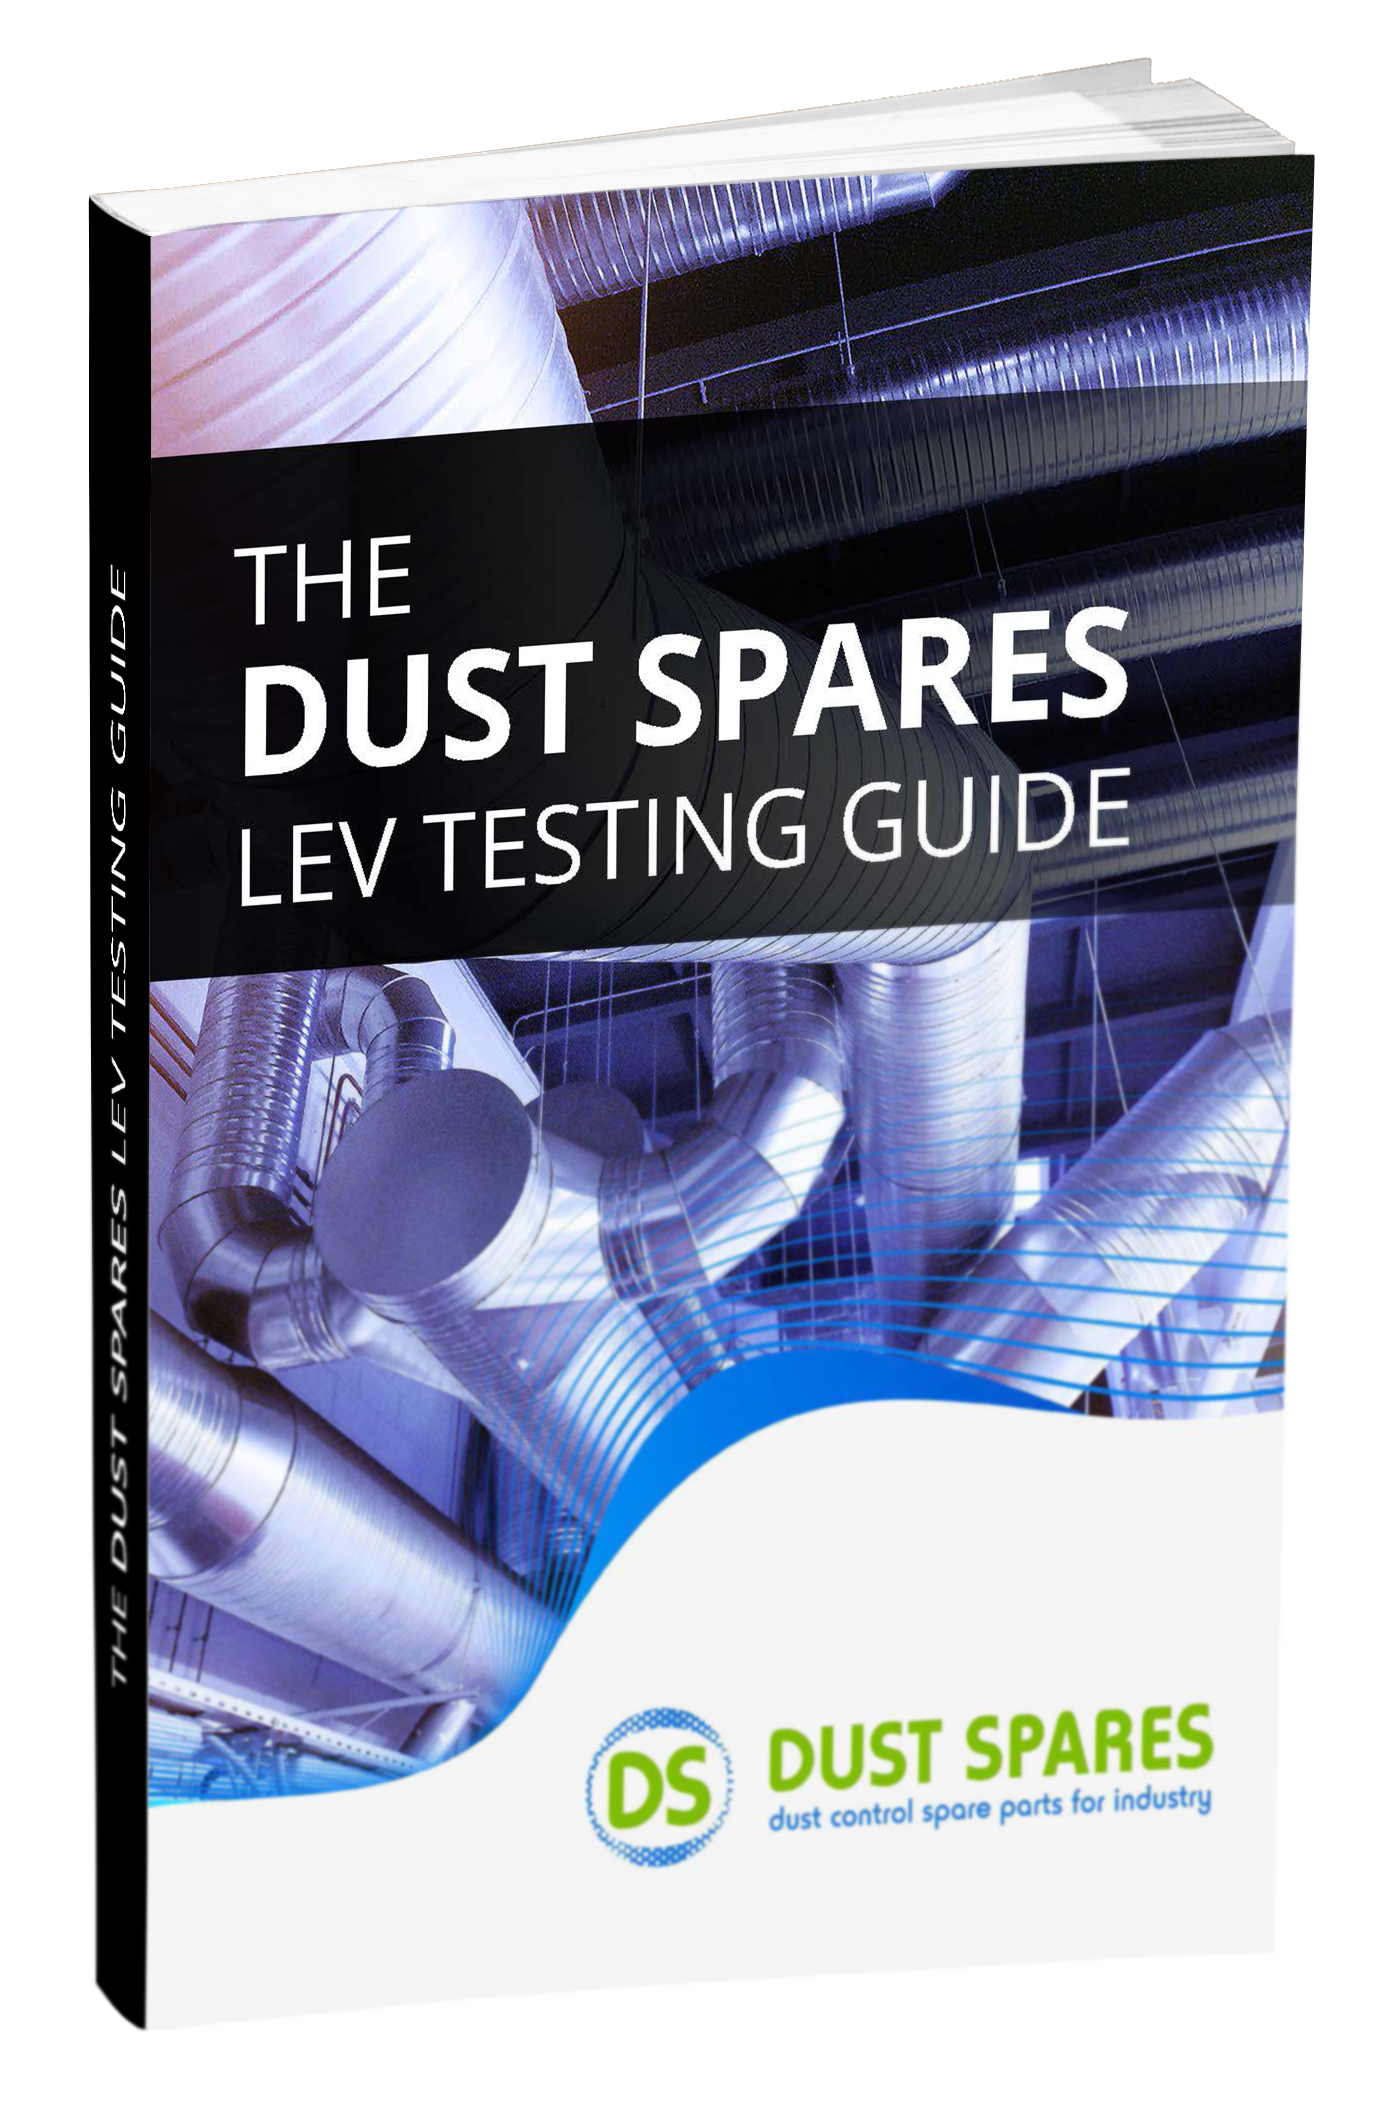 LEV Testing Guide